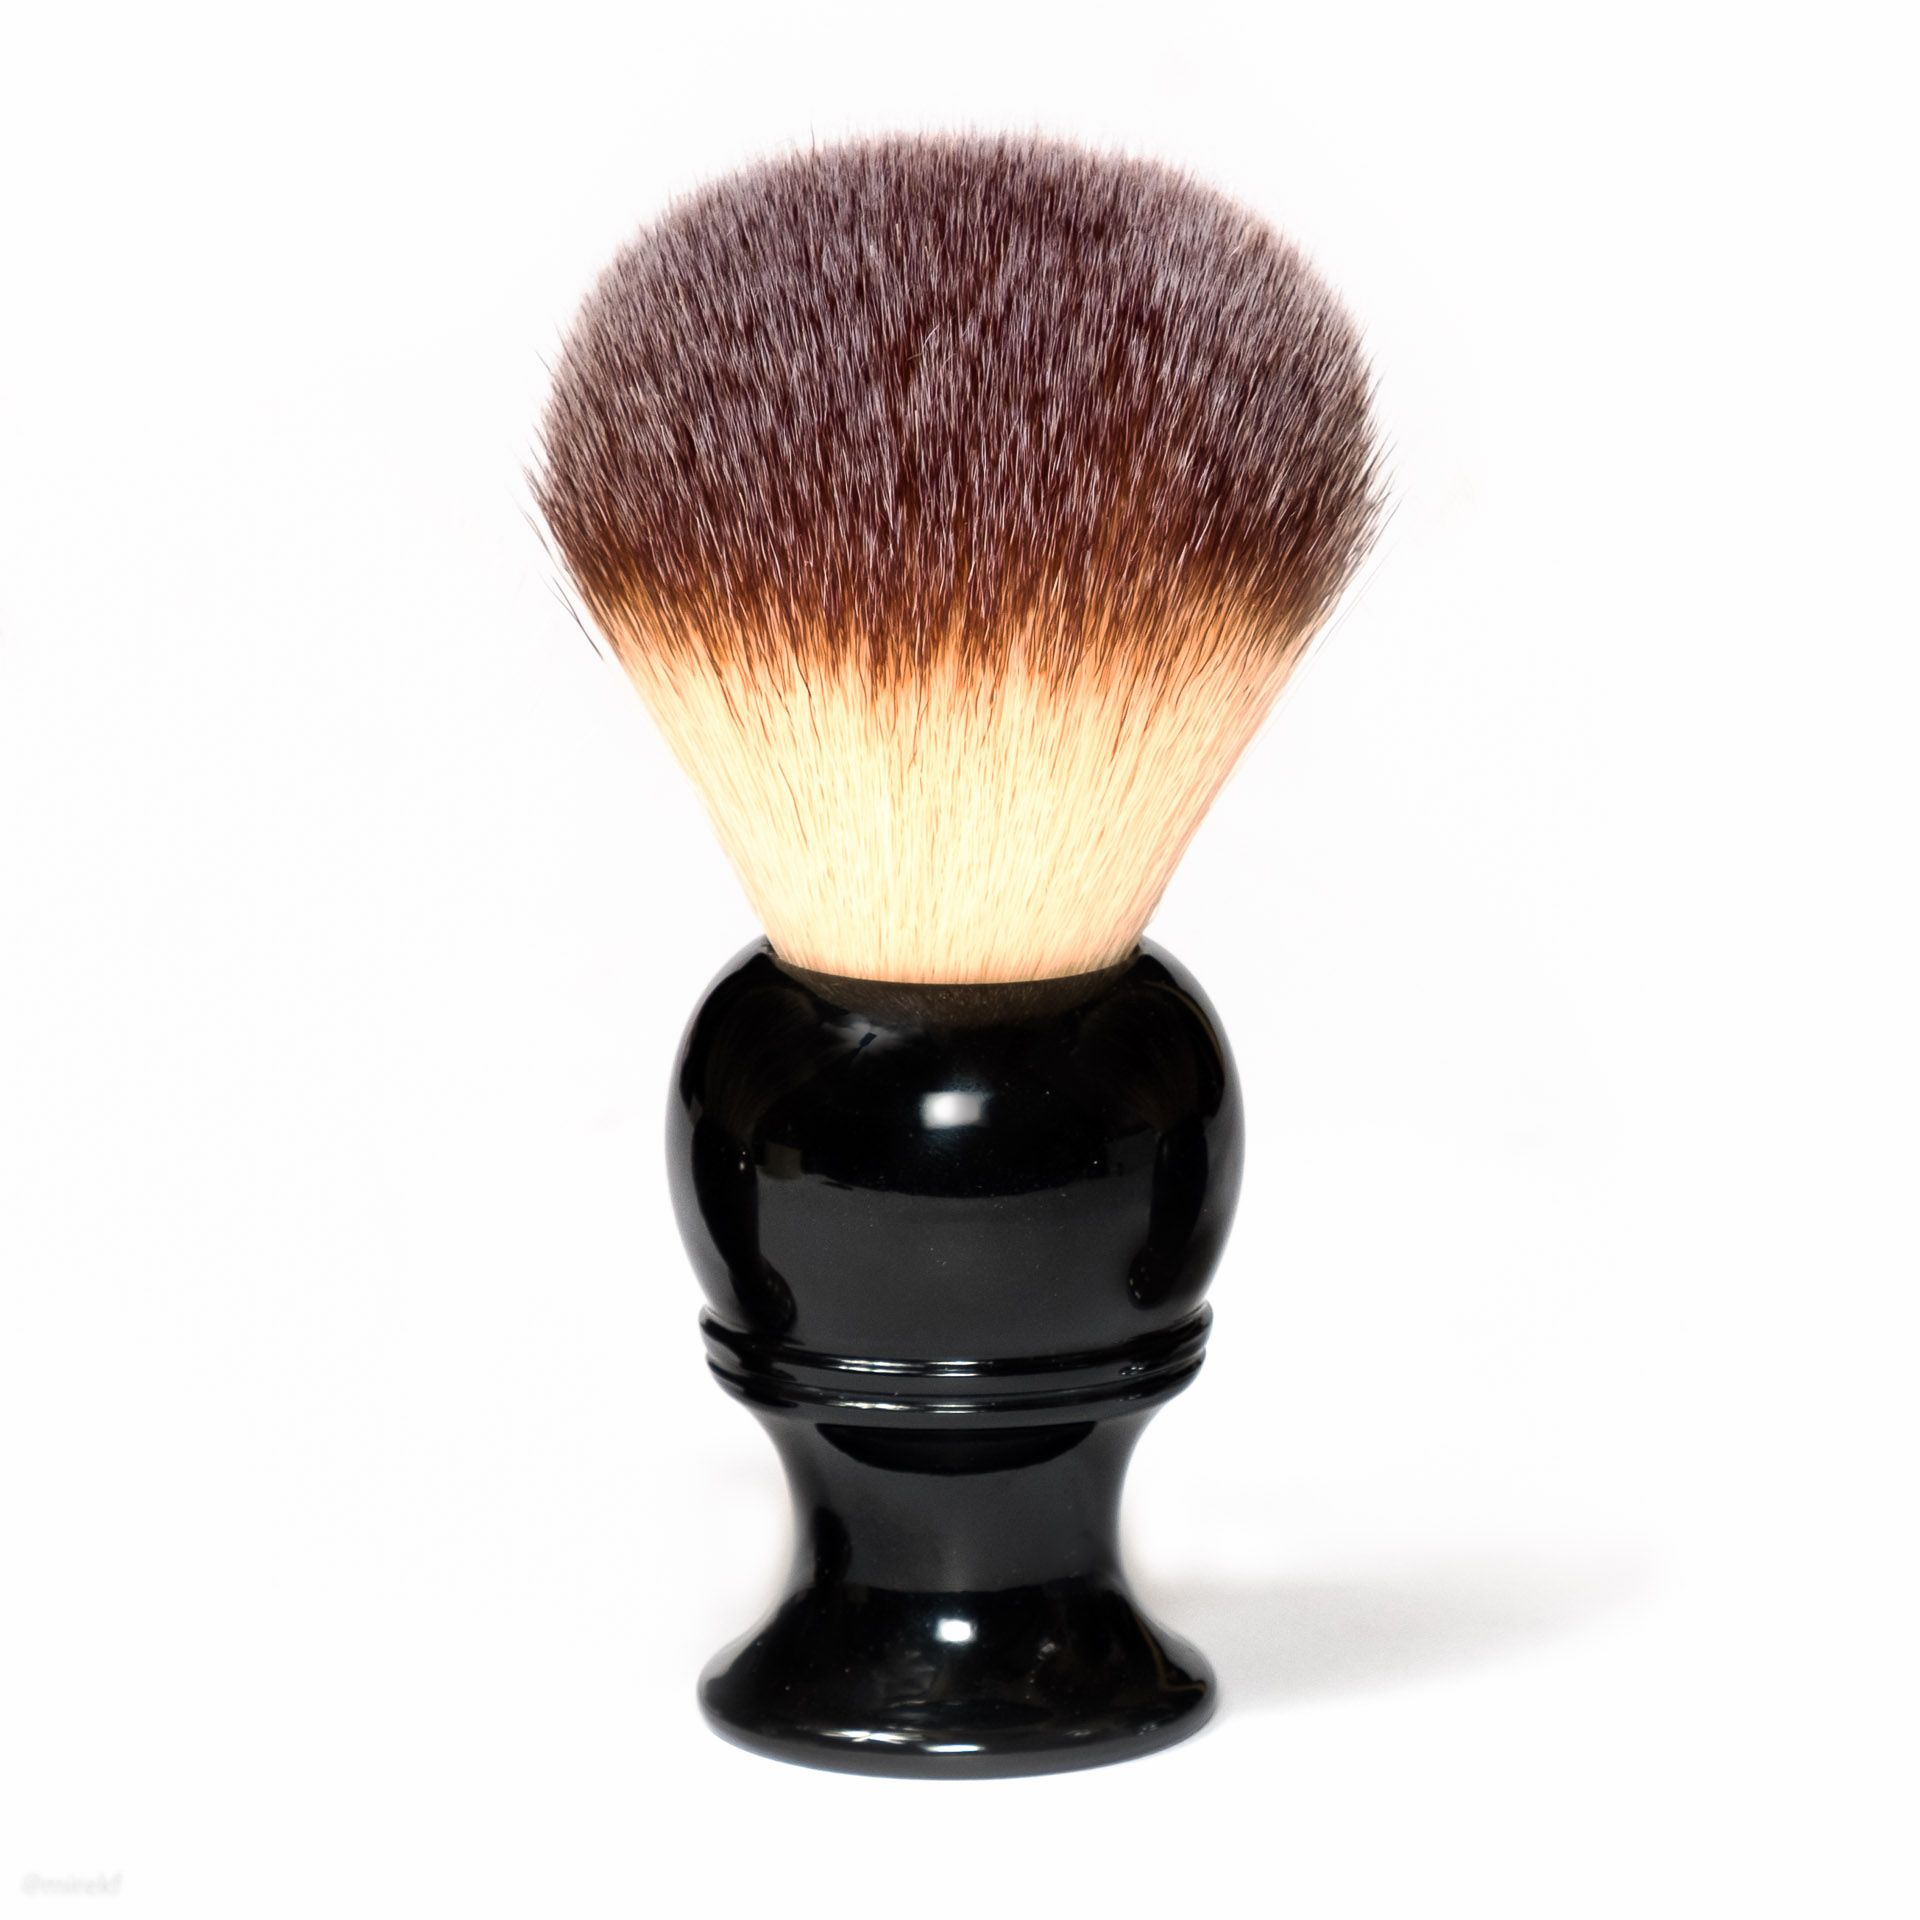 Pędzel do golenia Maggard Razors 24mm Synthetic Shaving Brush, Black Handle